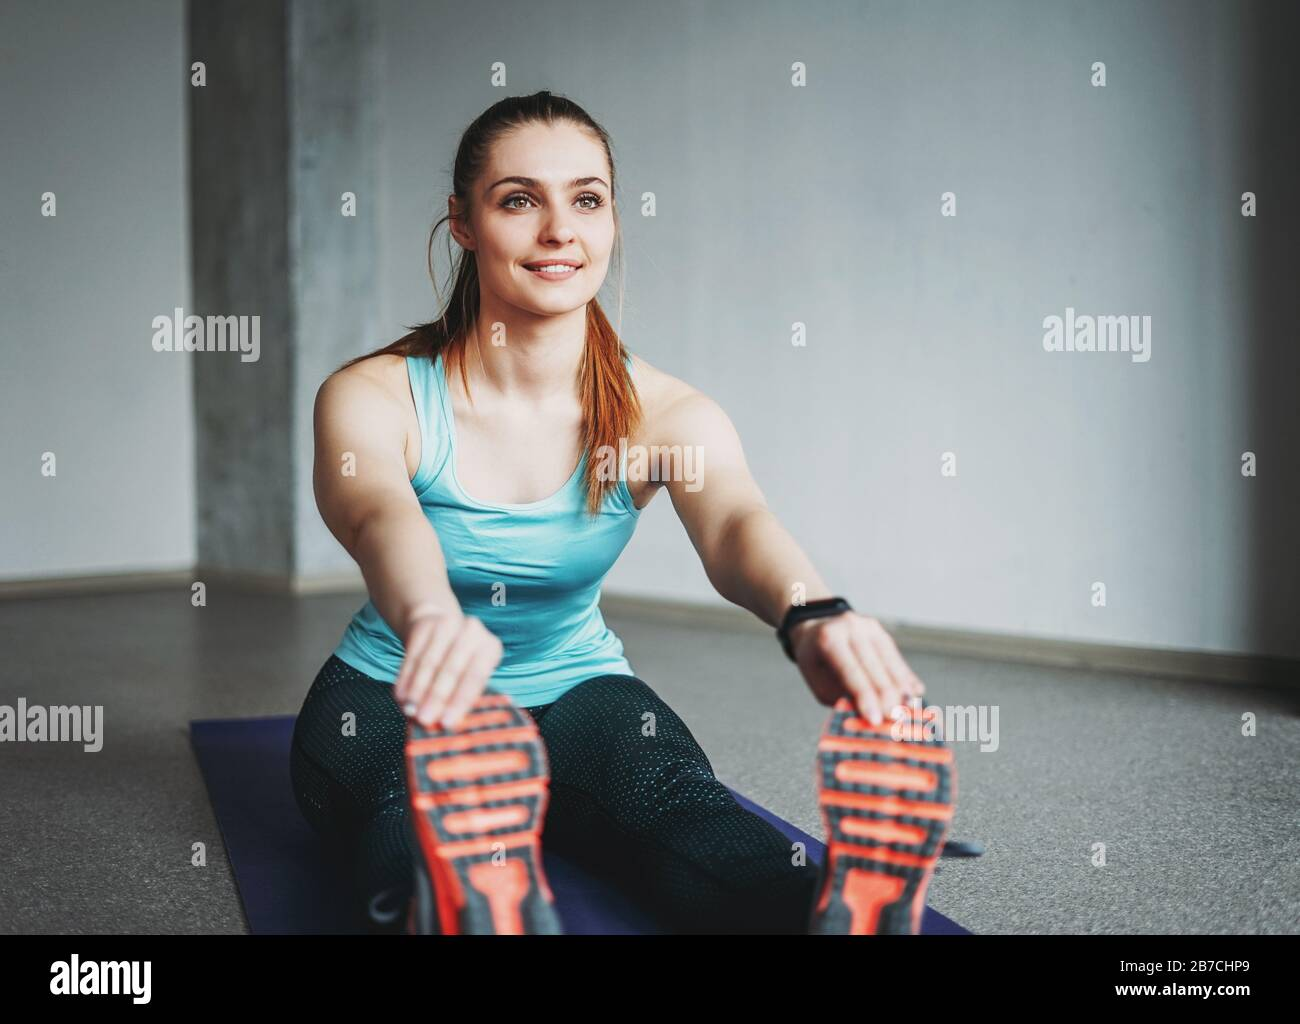 Attractive fit young woman sport wear fitness girl model doing stretching at the loft studio workout class Stock Photo